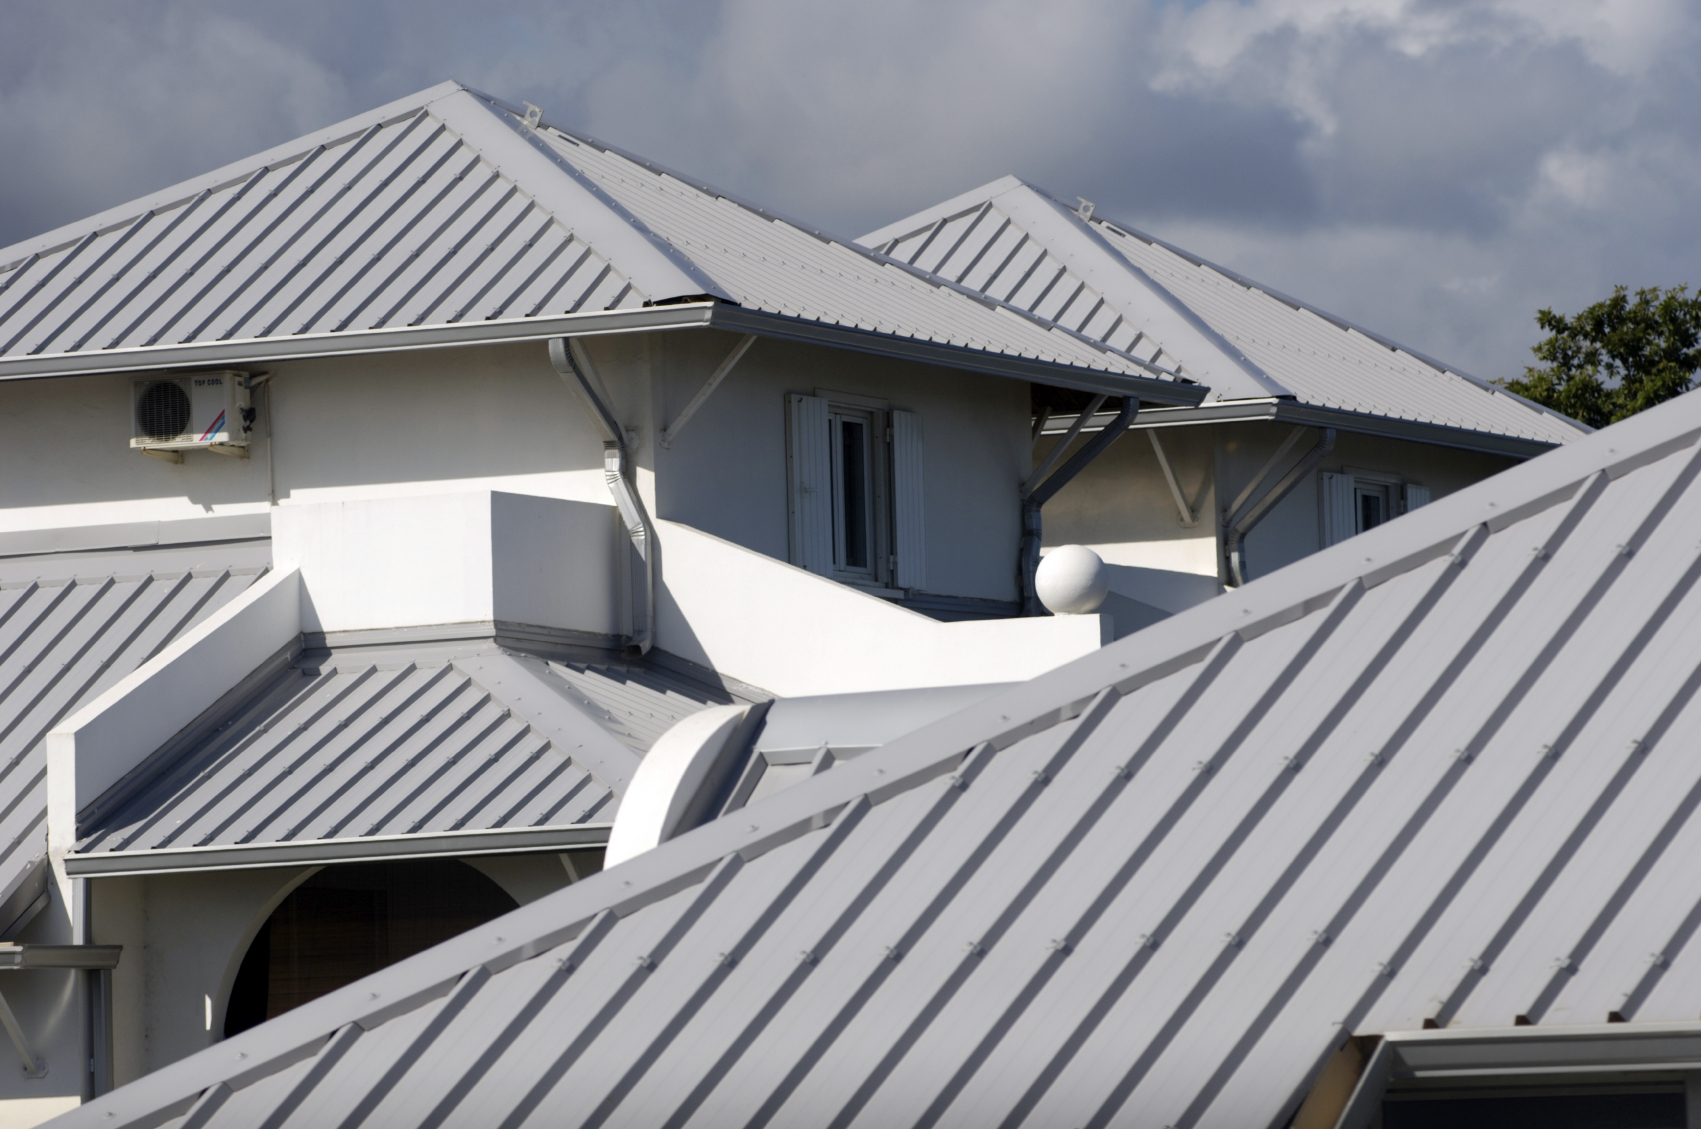 Steel Roofing Compare Roof Types Get Free Estimates